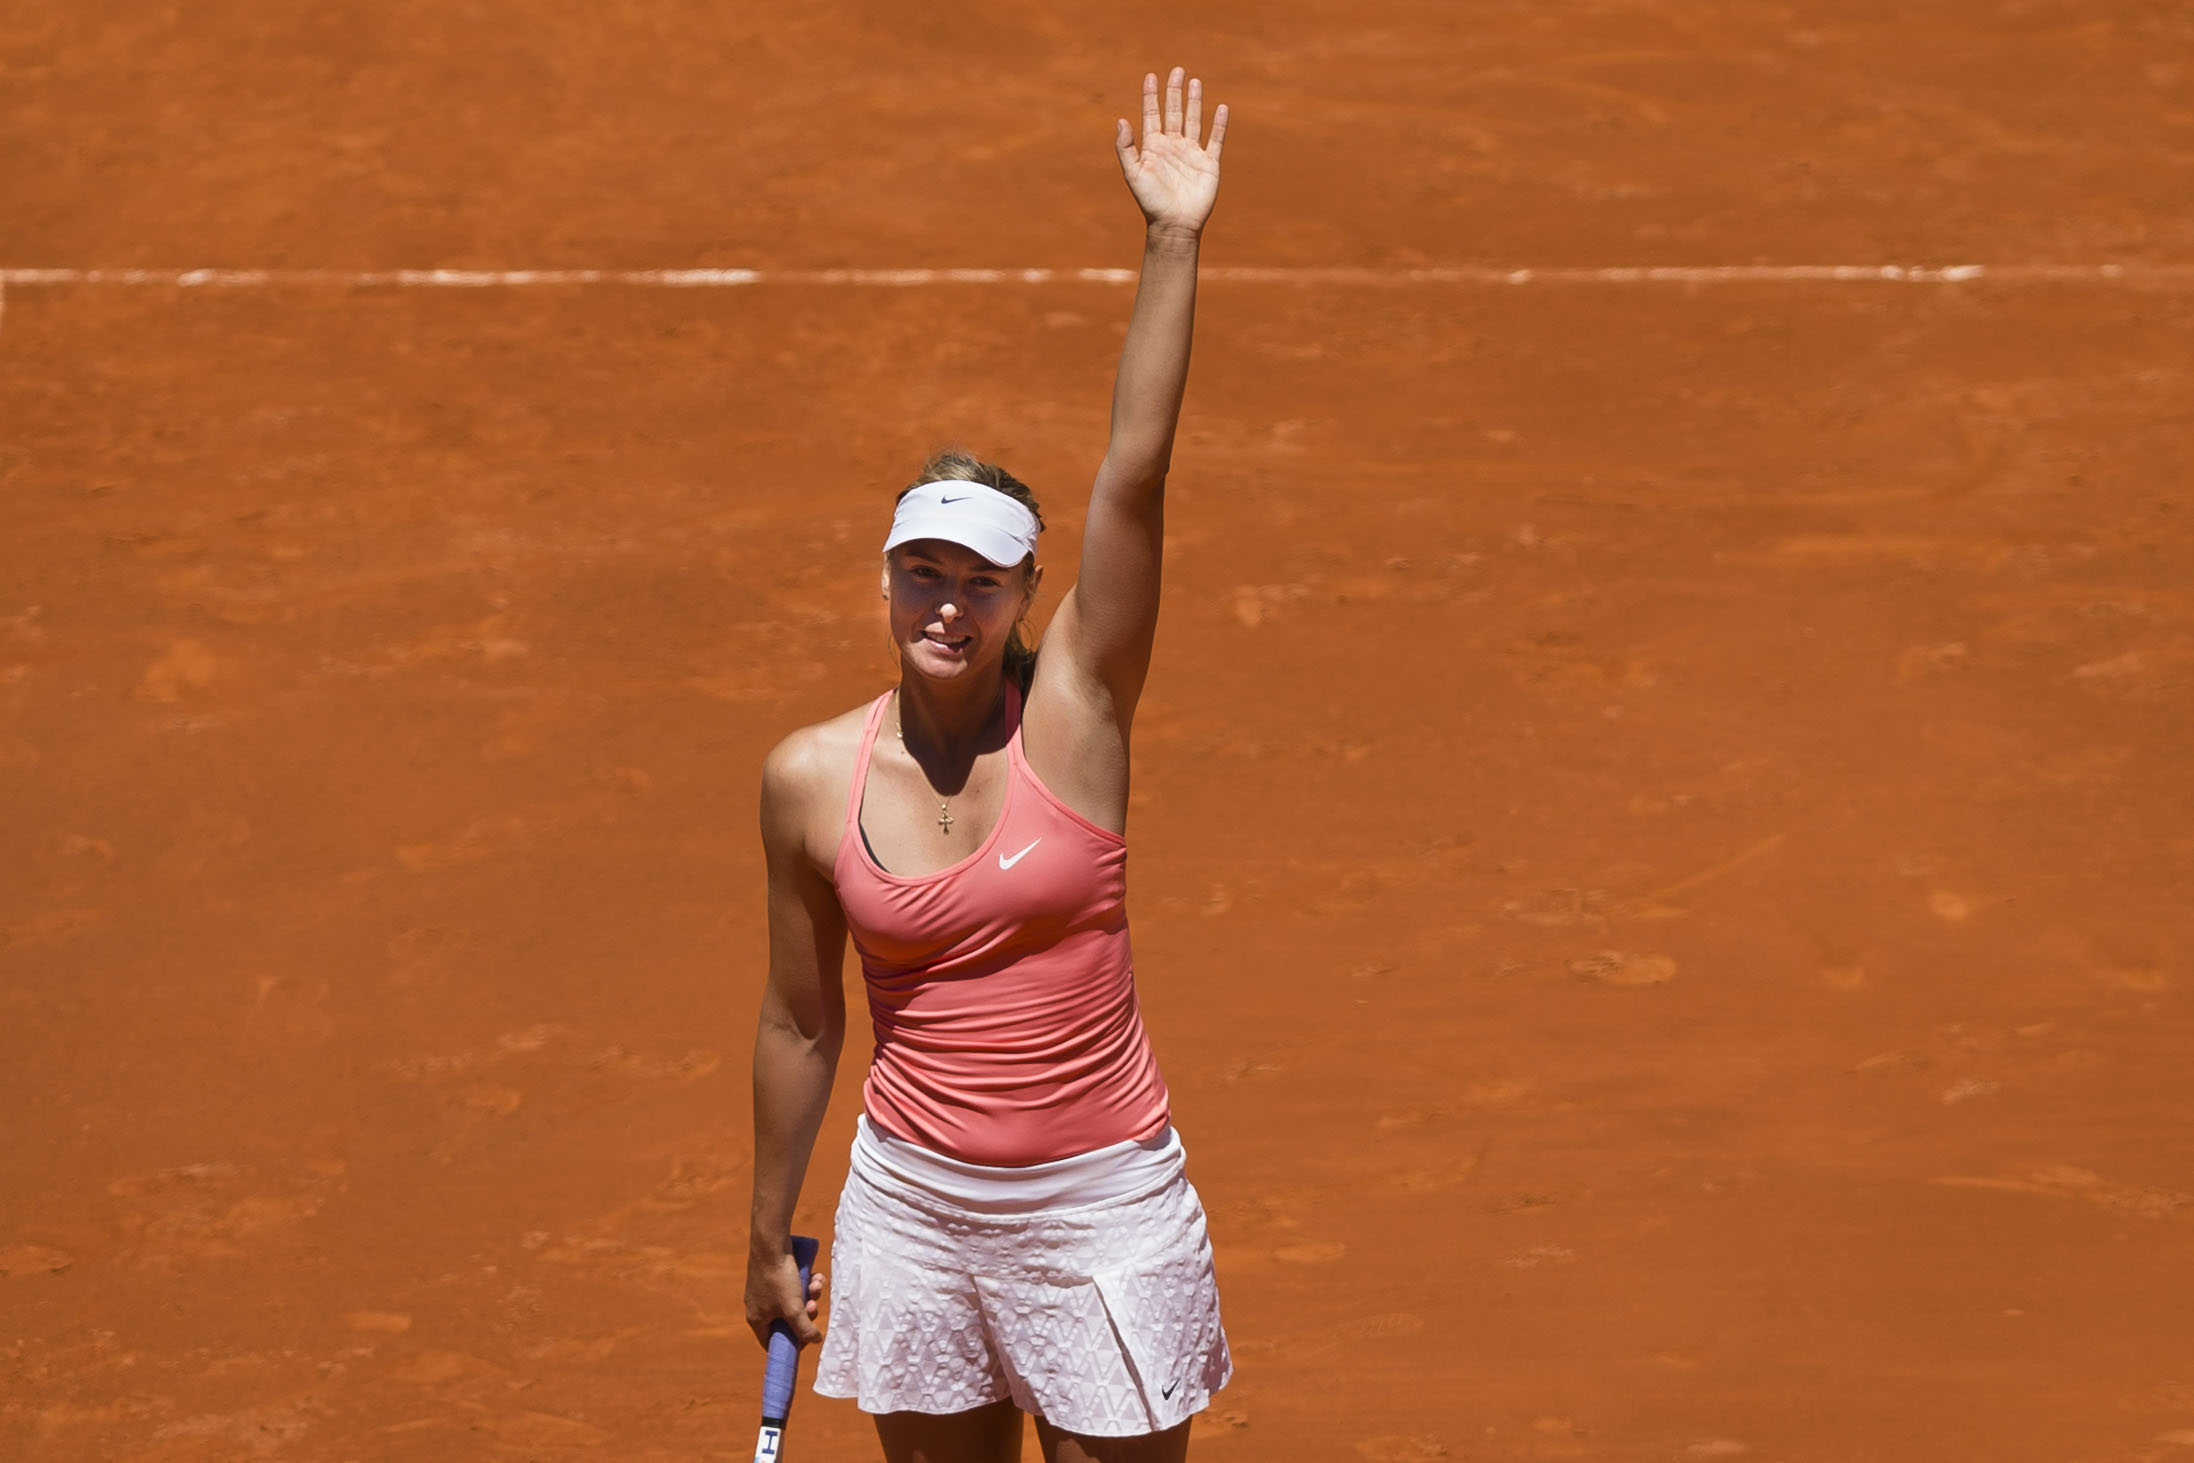 Maria Sharapova from Russia waves after defeating Caroline Garcia from France after their Madrid Open tennis tournament match in Madrid, Spain, Wednesday, May 6, 2015. (AP Photo/Daniel Ochoa de Olza)